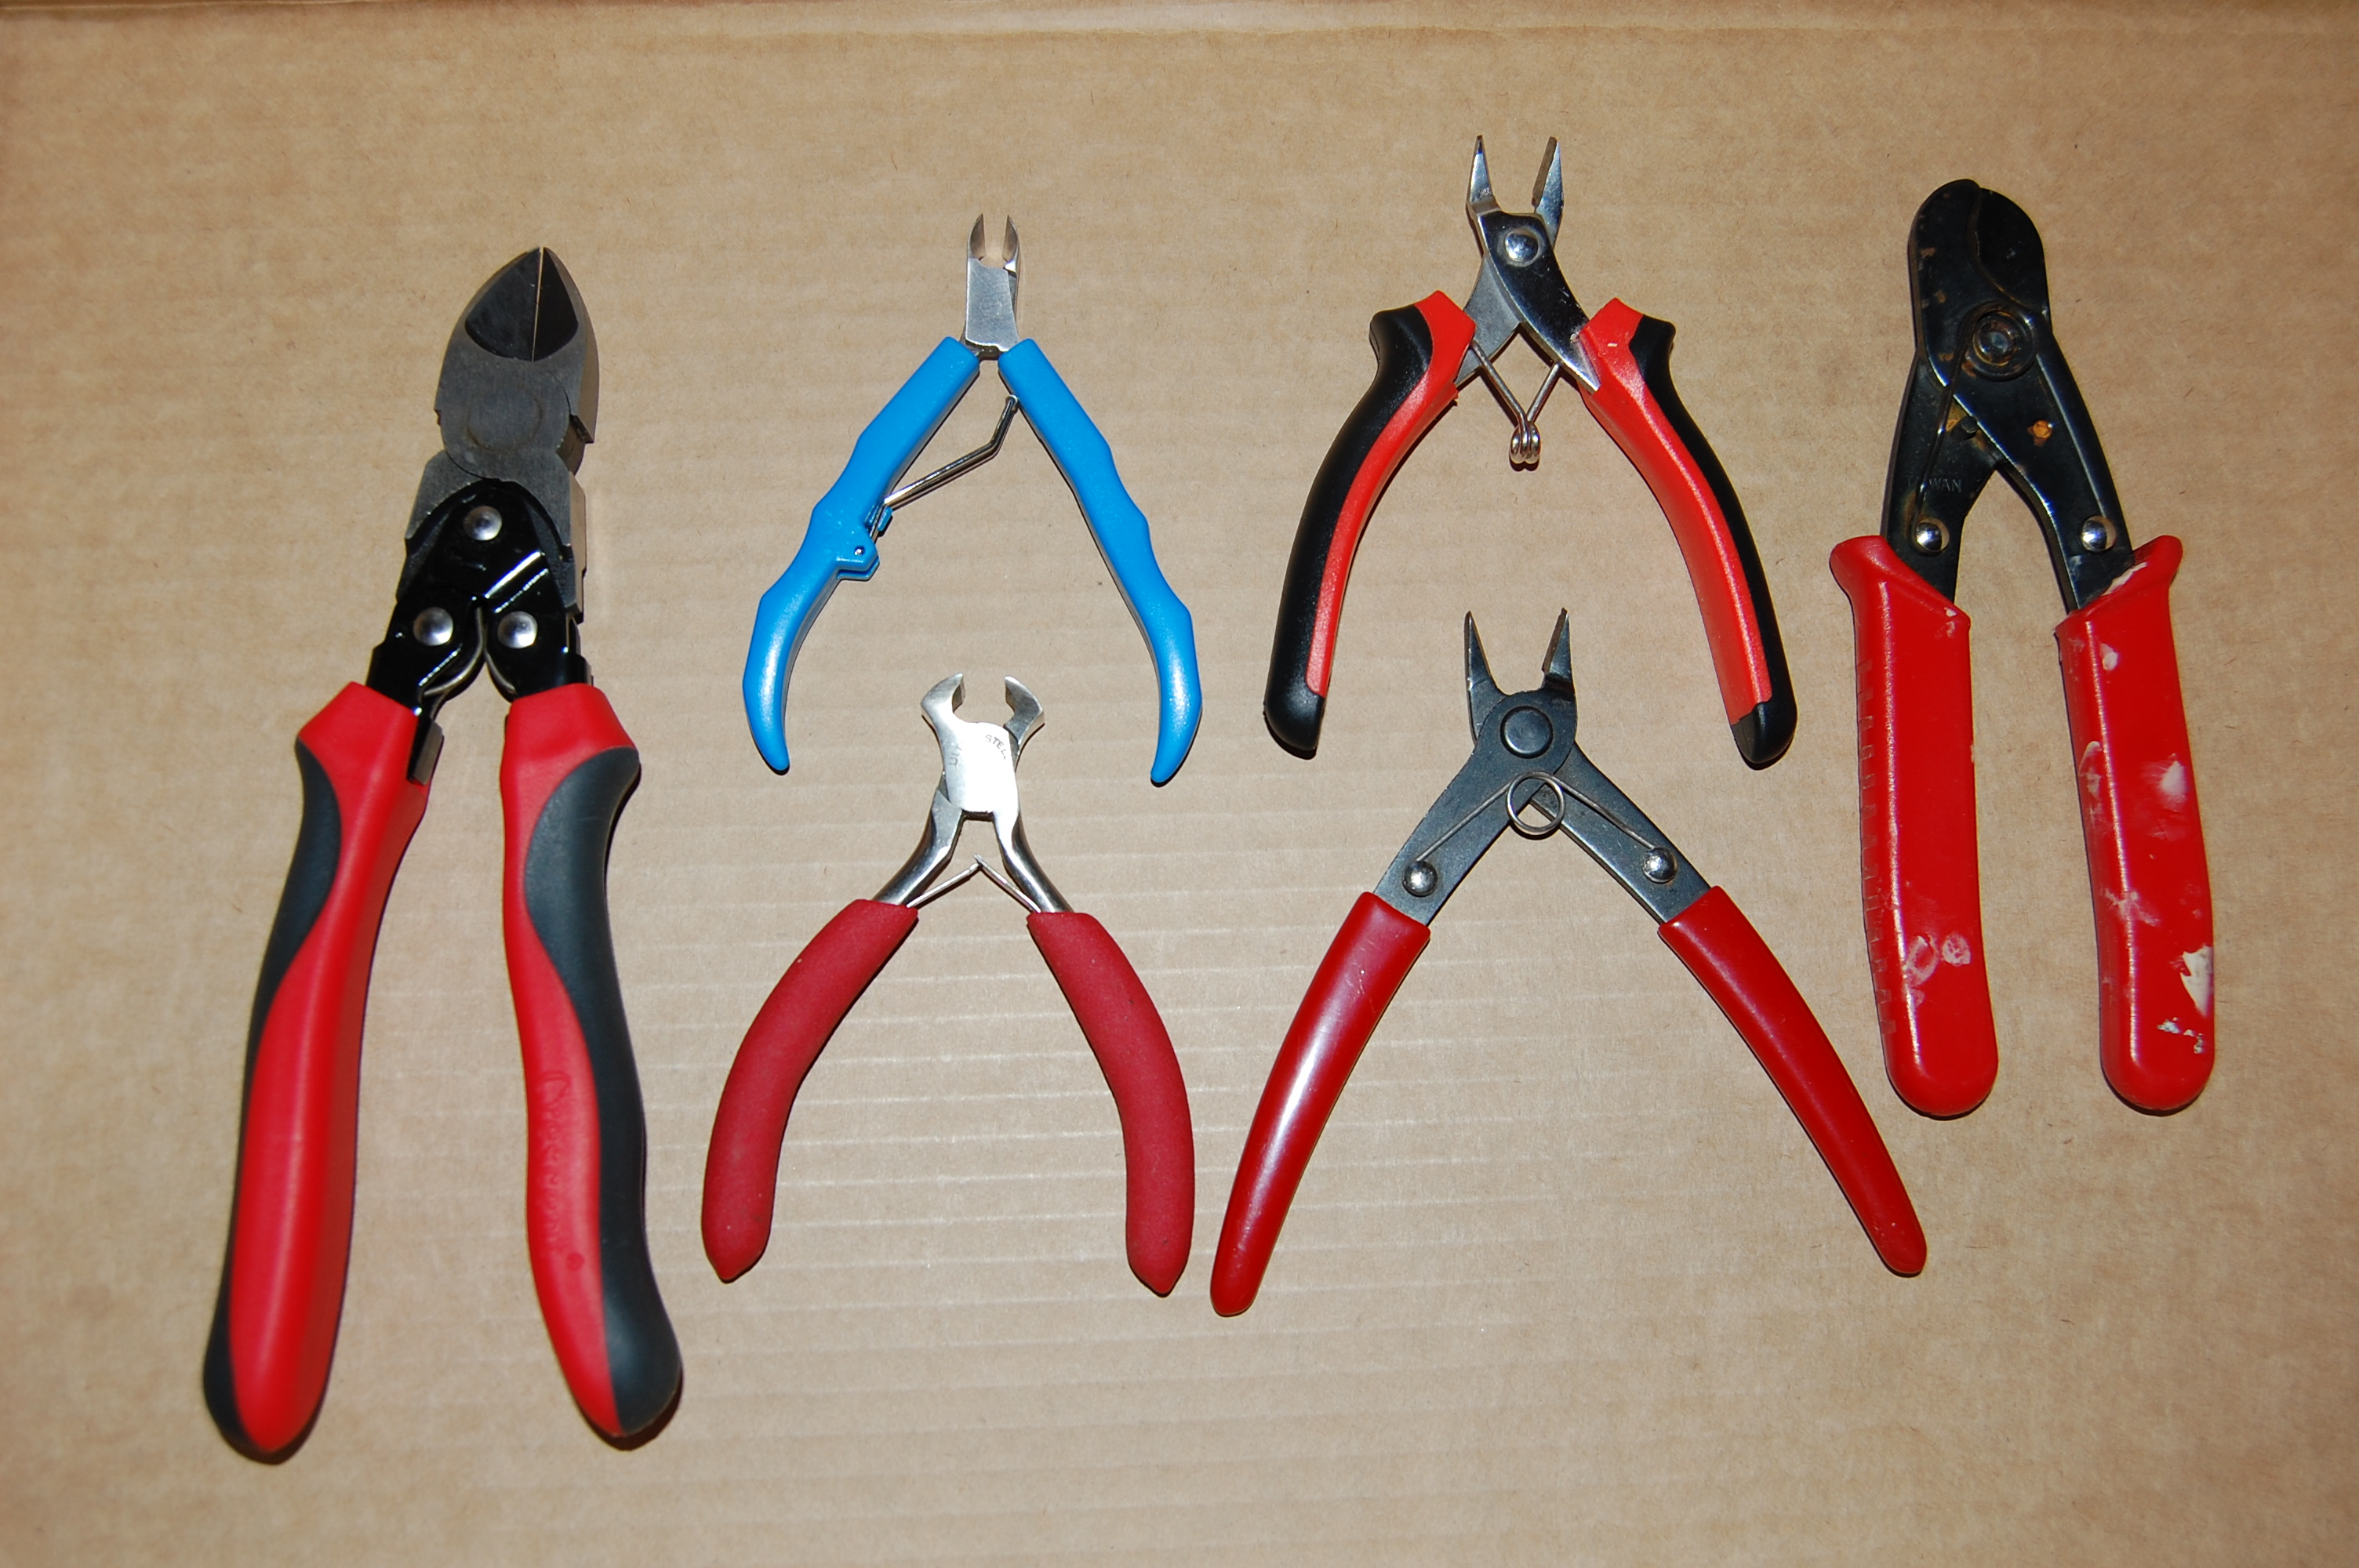 Basic Hand Tools For Electronics Assembly